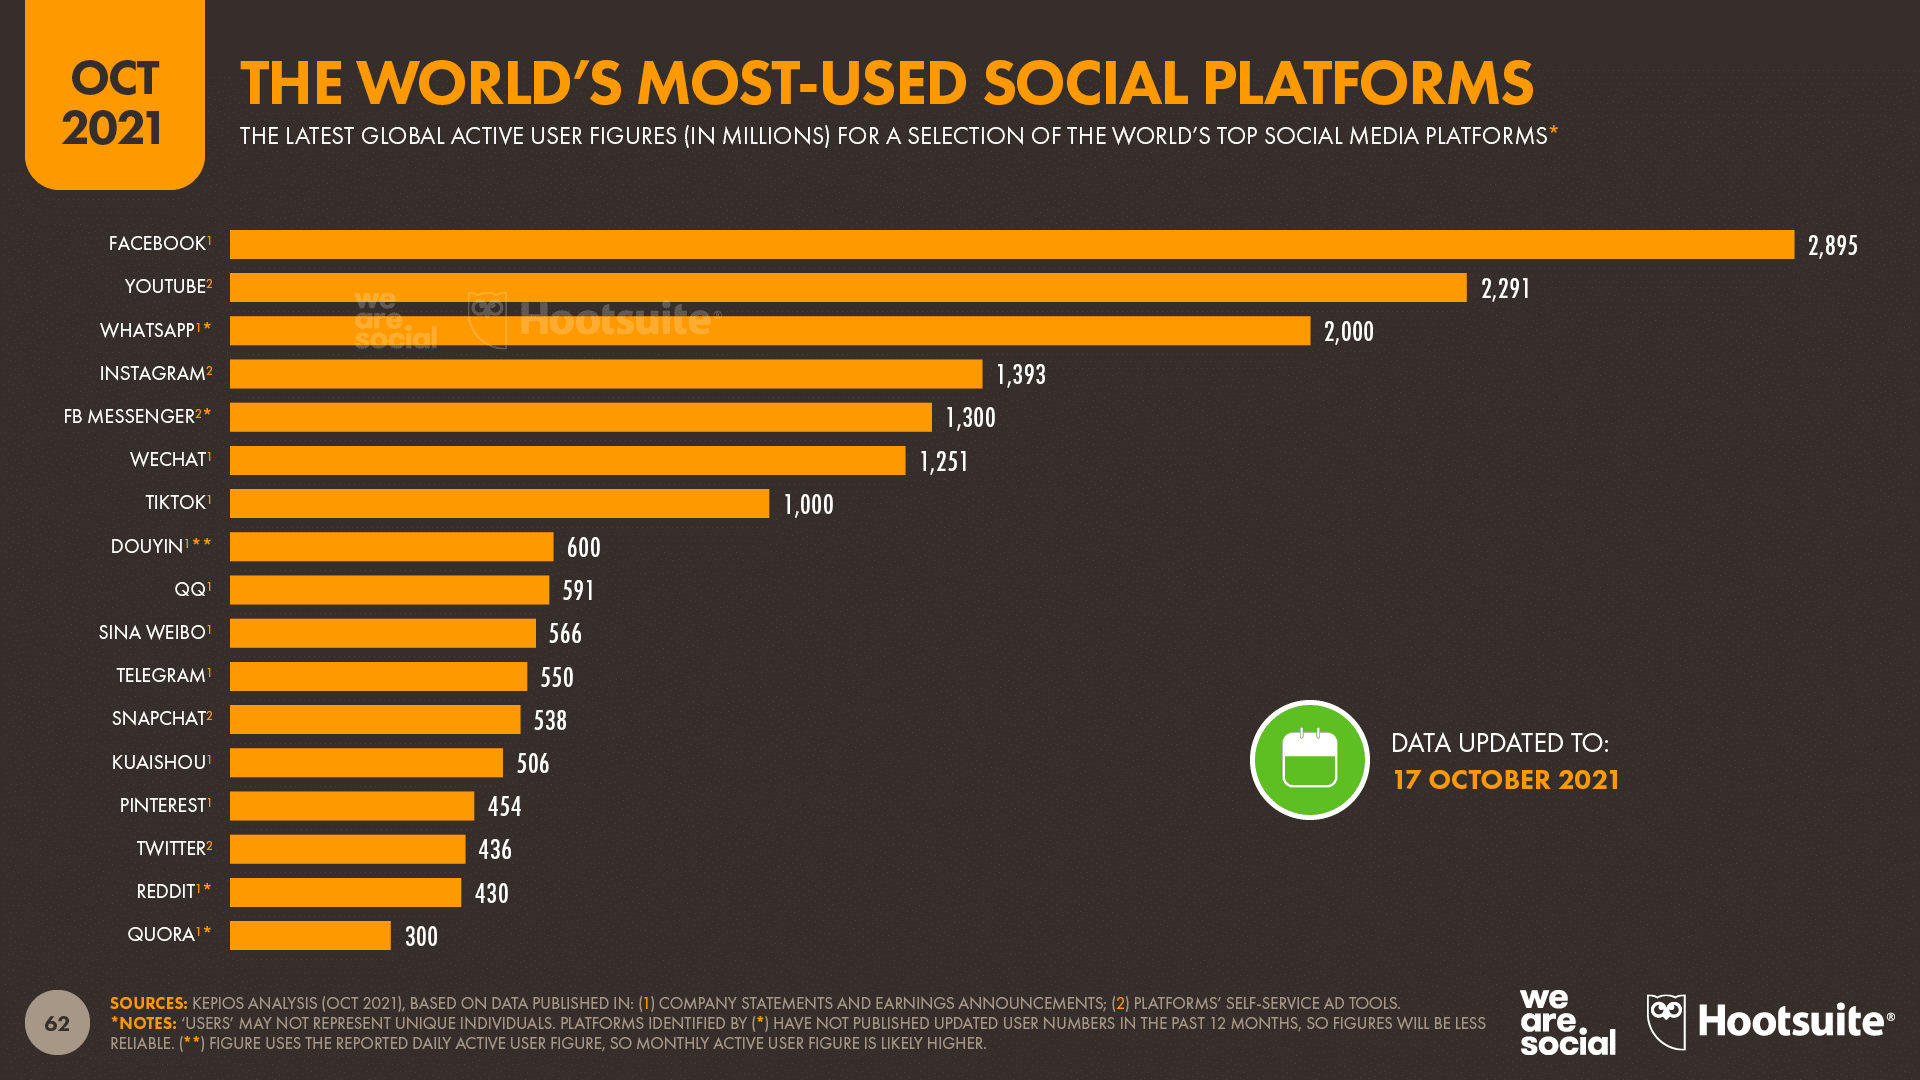 chart showing The World's Most-Used Social Platforms